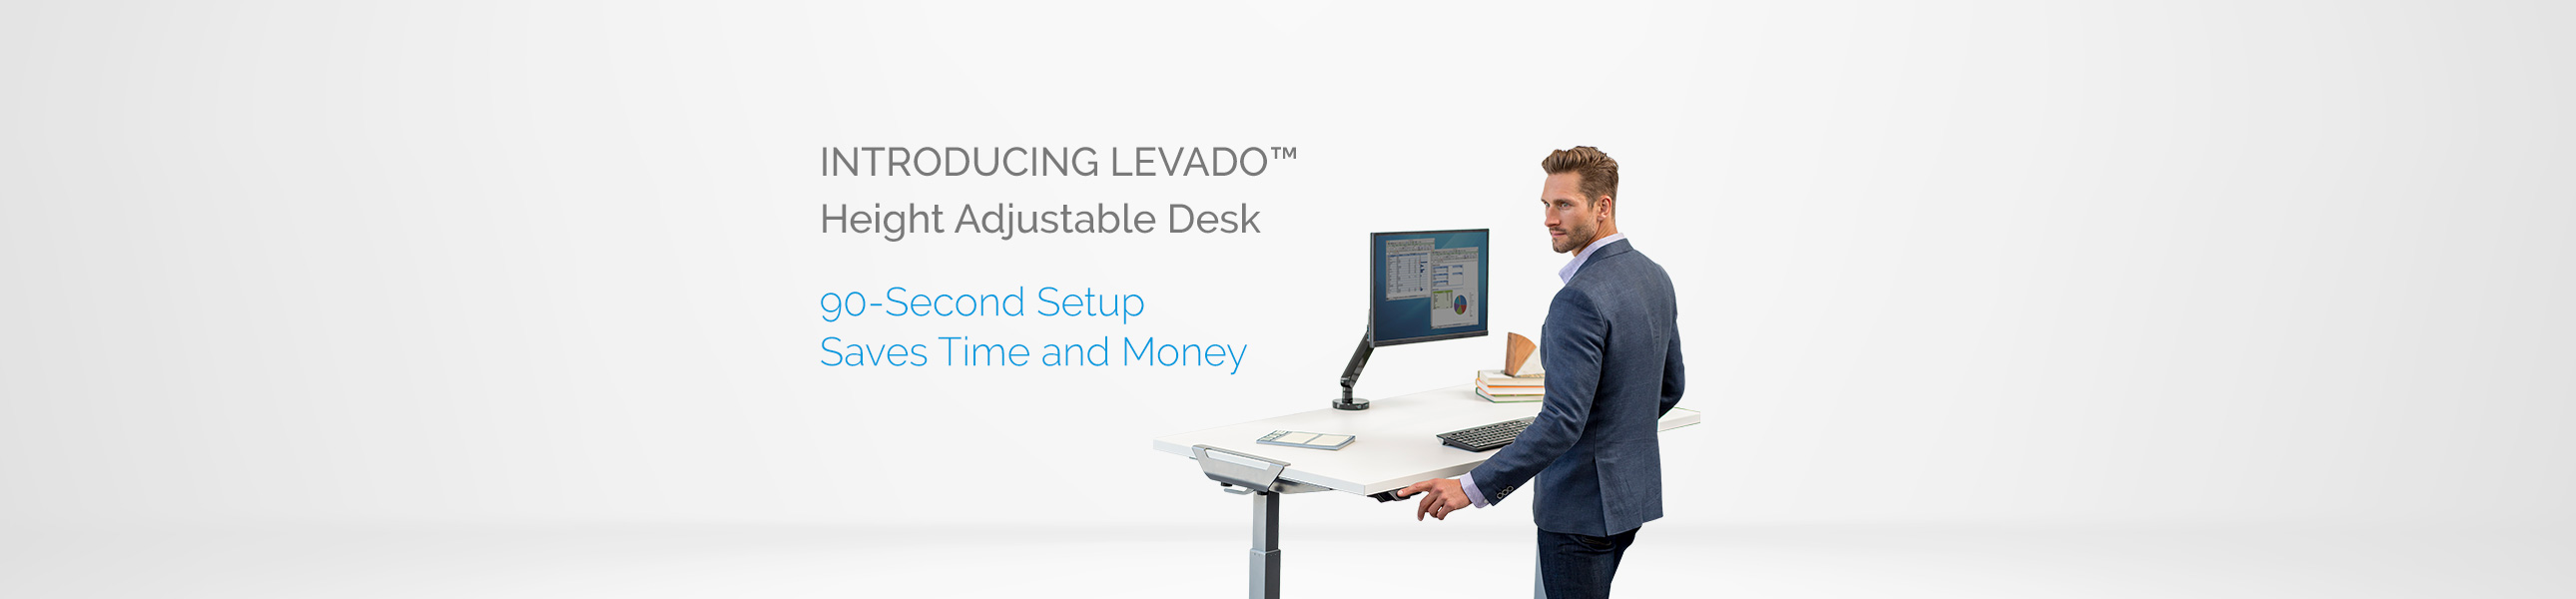 Introducing Levado™ Height Adjustable Desks - 90-Second Setup Saves Time and Money